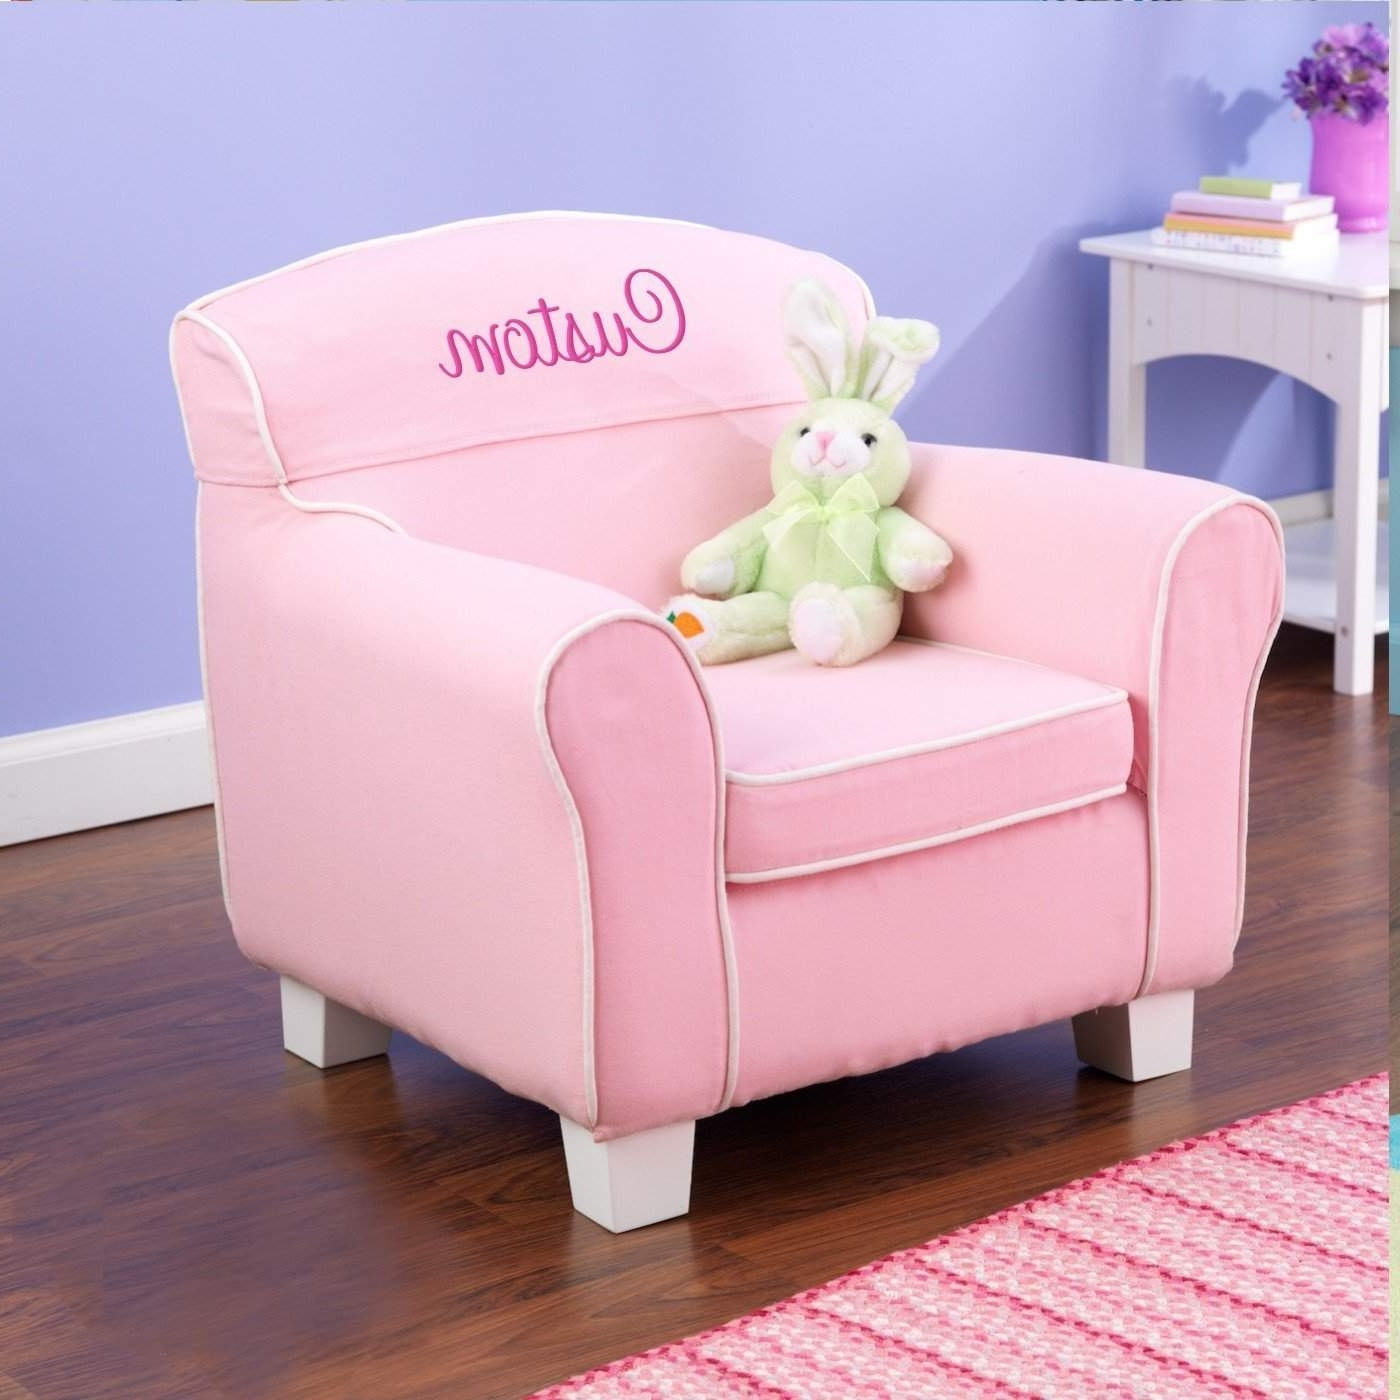 Personalized Chairs For Baby Photos Of Personalized Kids Chairs And Sofas Showing 8 Of 20 Photos